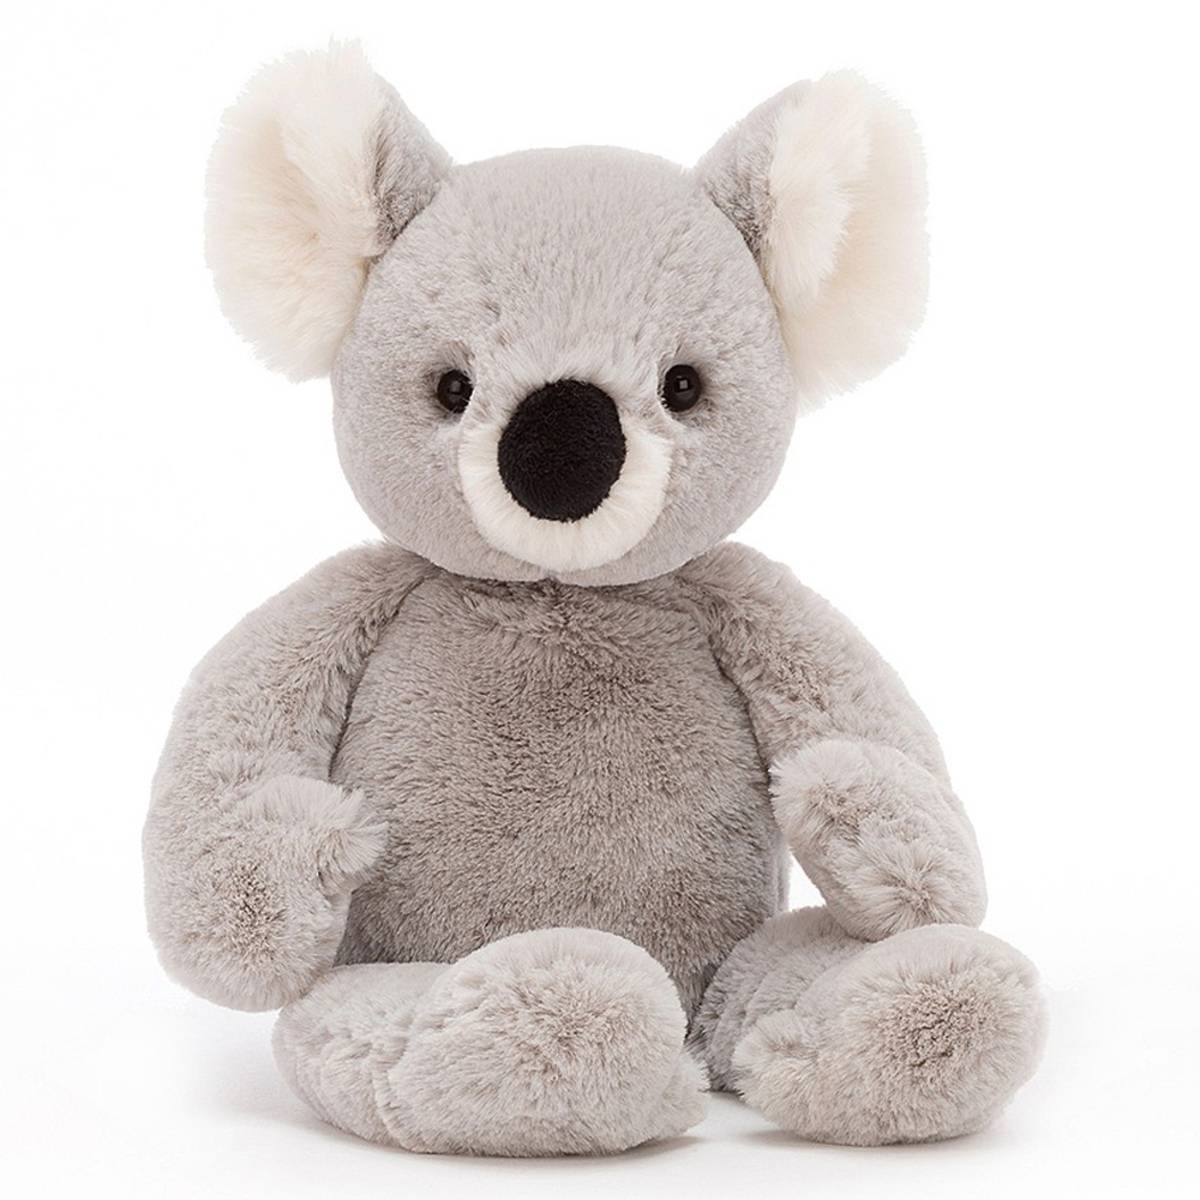 Jellycat Benji Koala - Medium